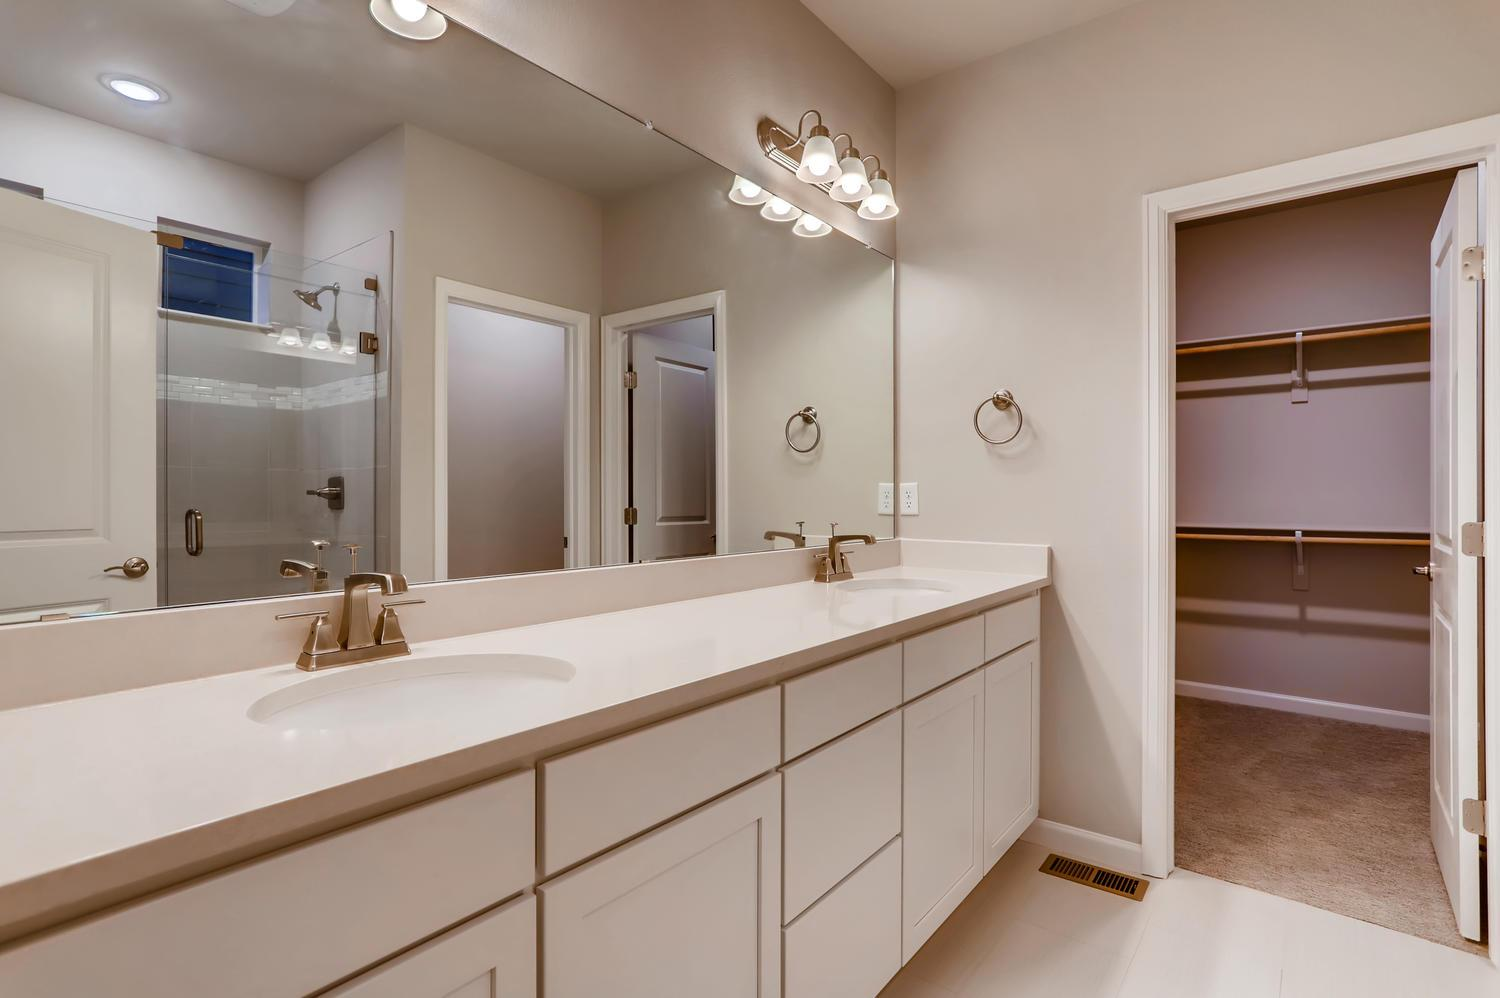 Bathroom featured in the Union By RichfieldHomes in Fort Collins-Loveland, CO